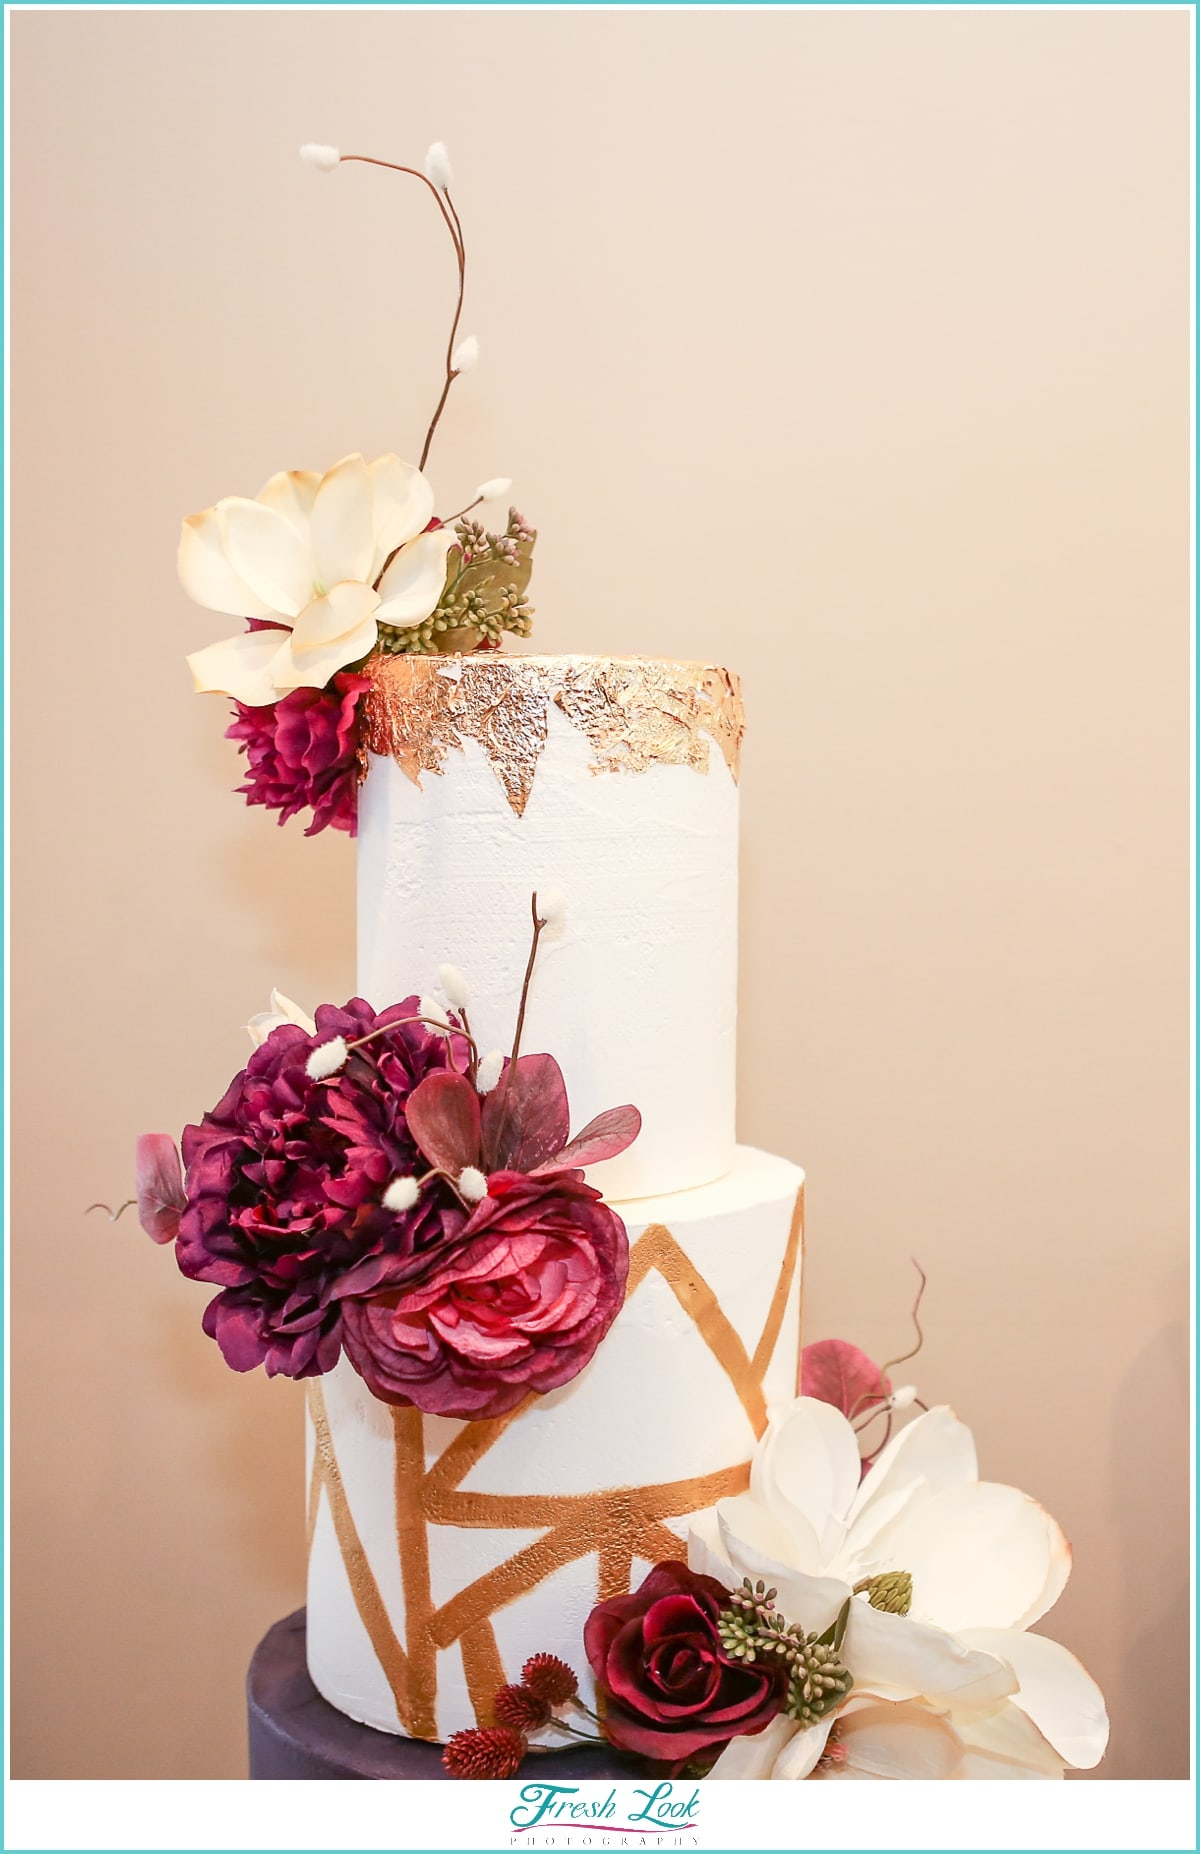 handcrafted sugar flowers on wedding cake